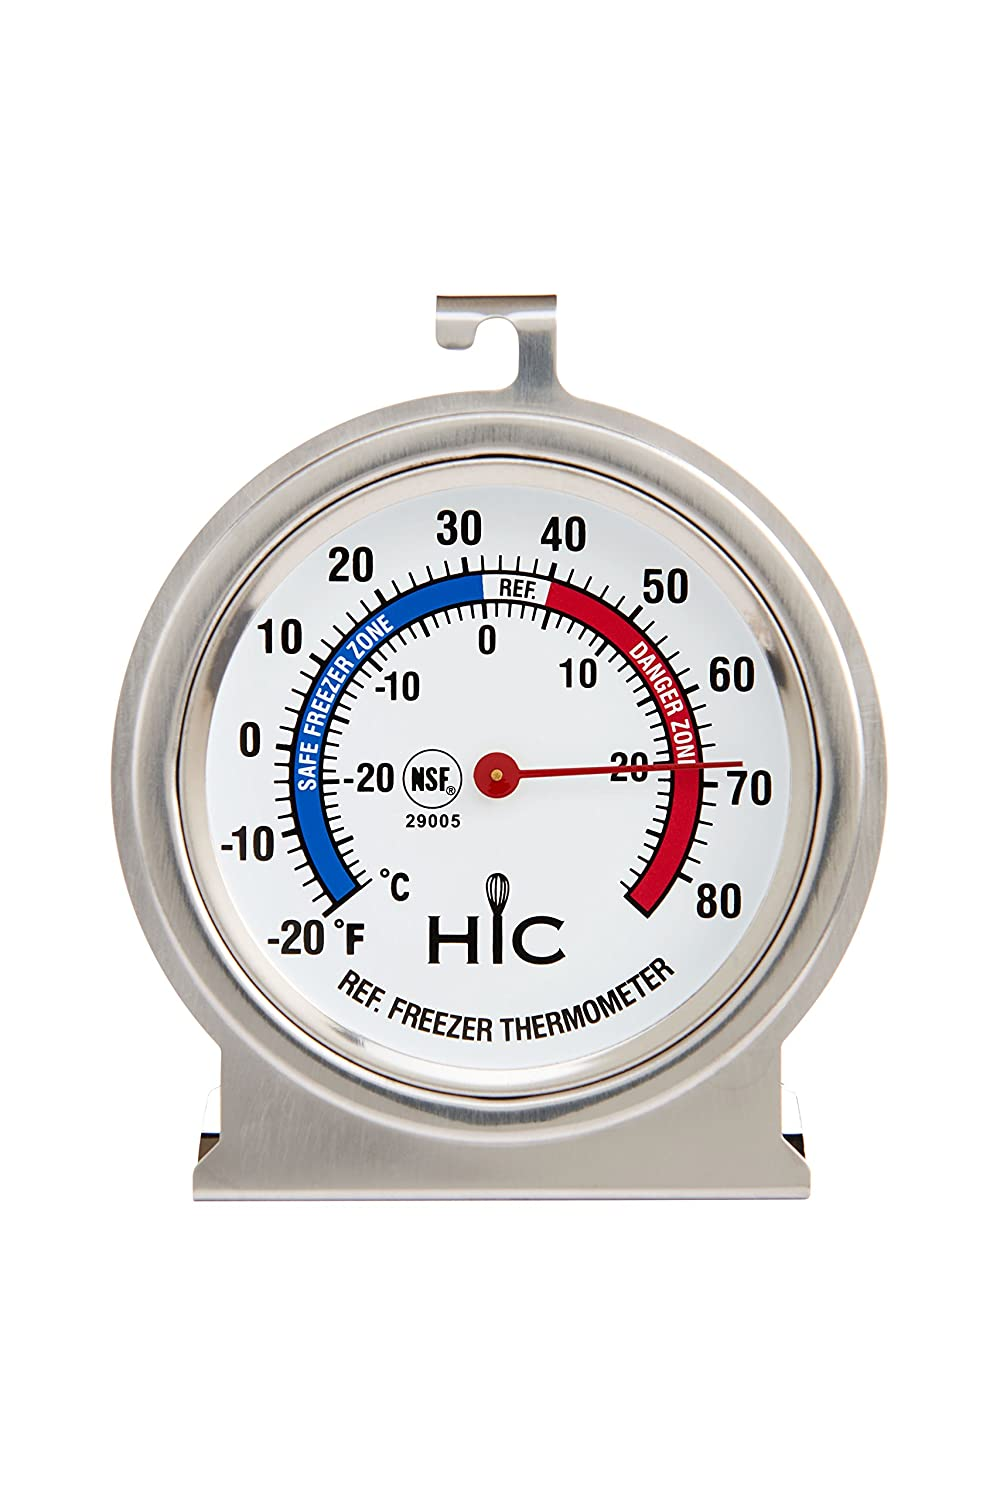 HIC Harold Import 29005 HIC Roasting Refrigerator Freezer Thermometer, Large 2.5-Inch Easy-Read Face with Safe Temperature Guide, Stainless Steel